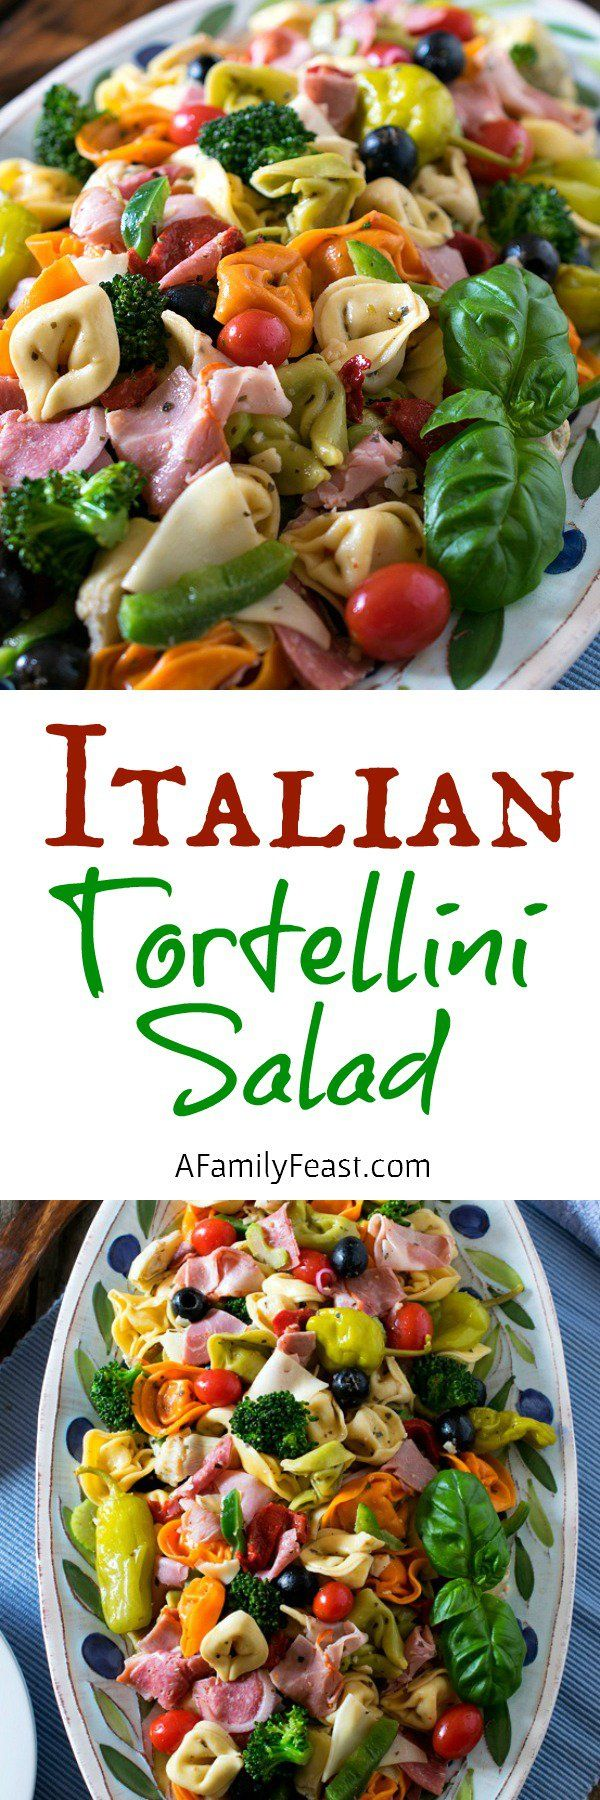 Italian Tortellini Salad - Tri-color tortellini pasta, deli meats and cheeses, plus a variety of vegetables. This salad is delicious!